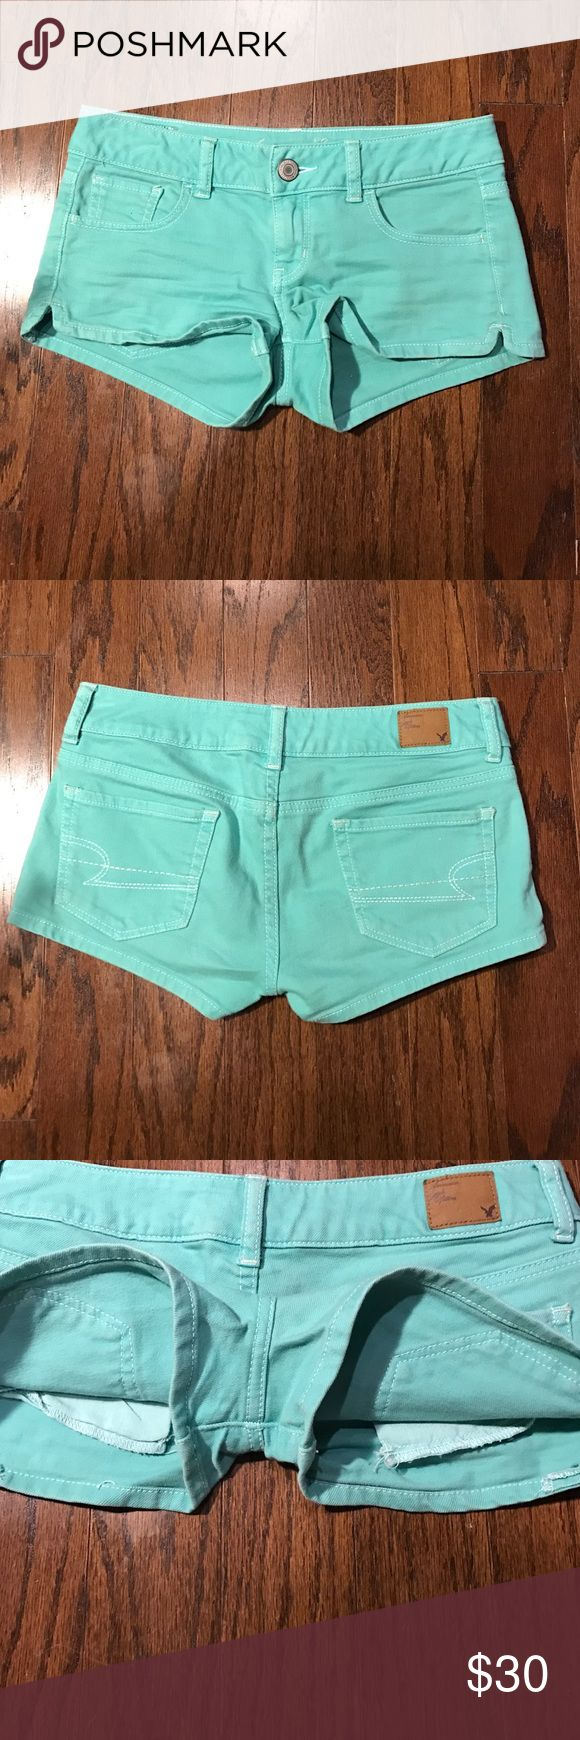 "American Eagle Outfitters teal denim shorts Never worn. Super low rise waist. Stretch line. Teal. 2"" inseam. 98% cotton. 2% spandex. Open to reasonable offers! American Eagle Outfitters Shorts Jean Shorts"